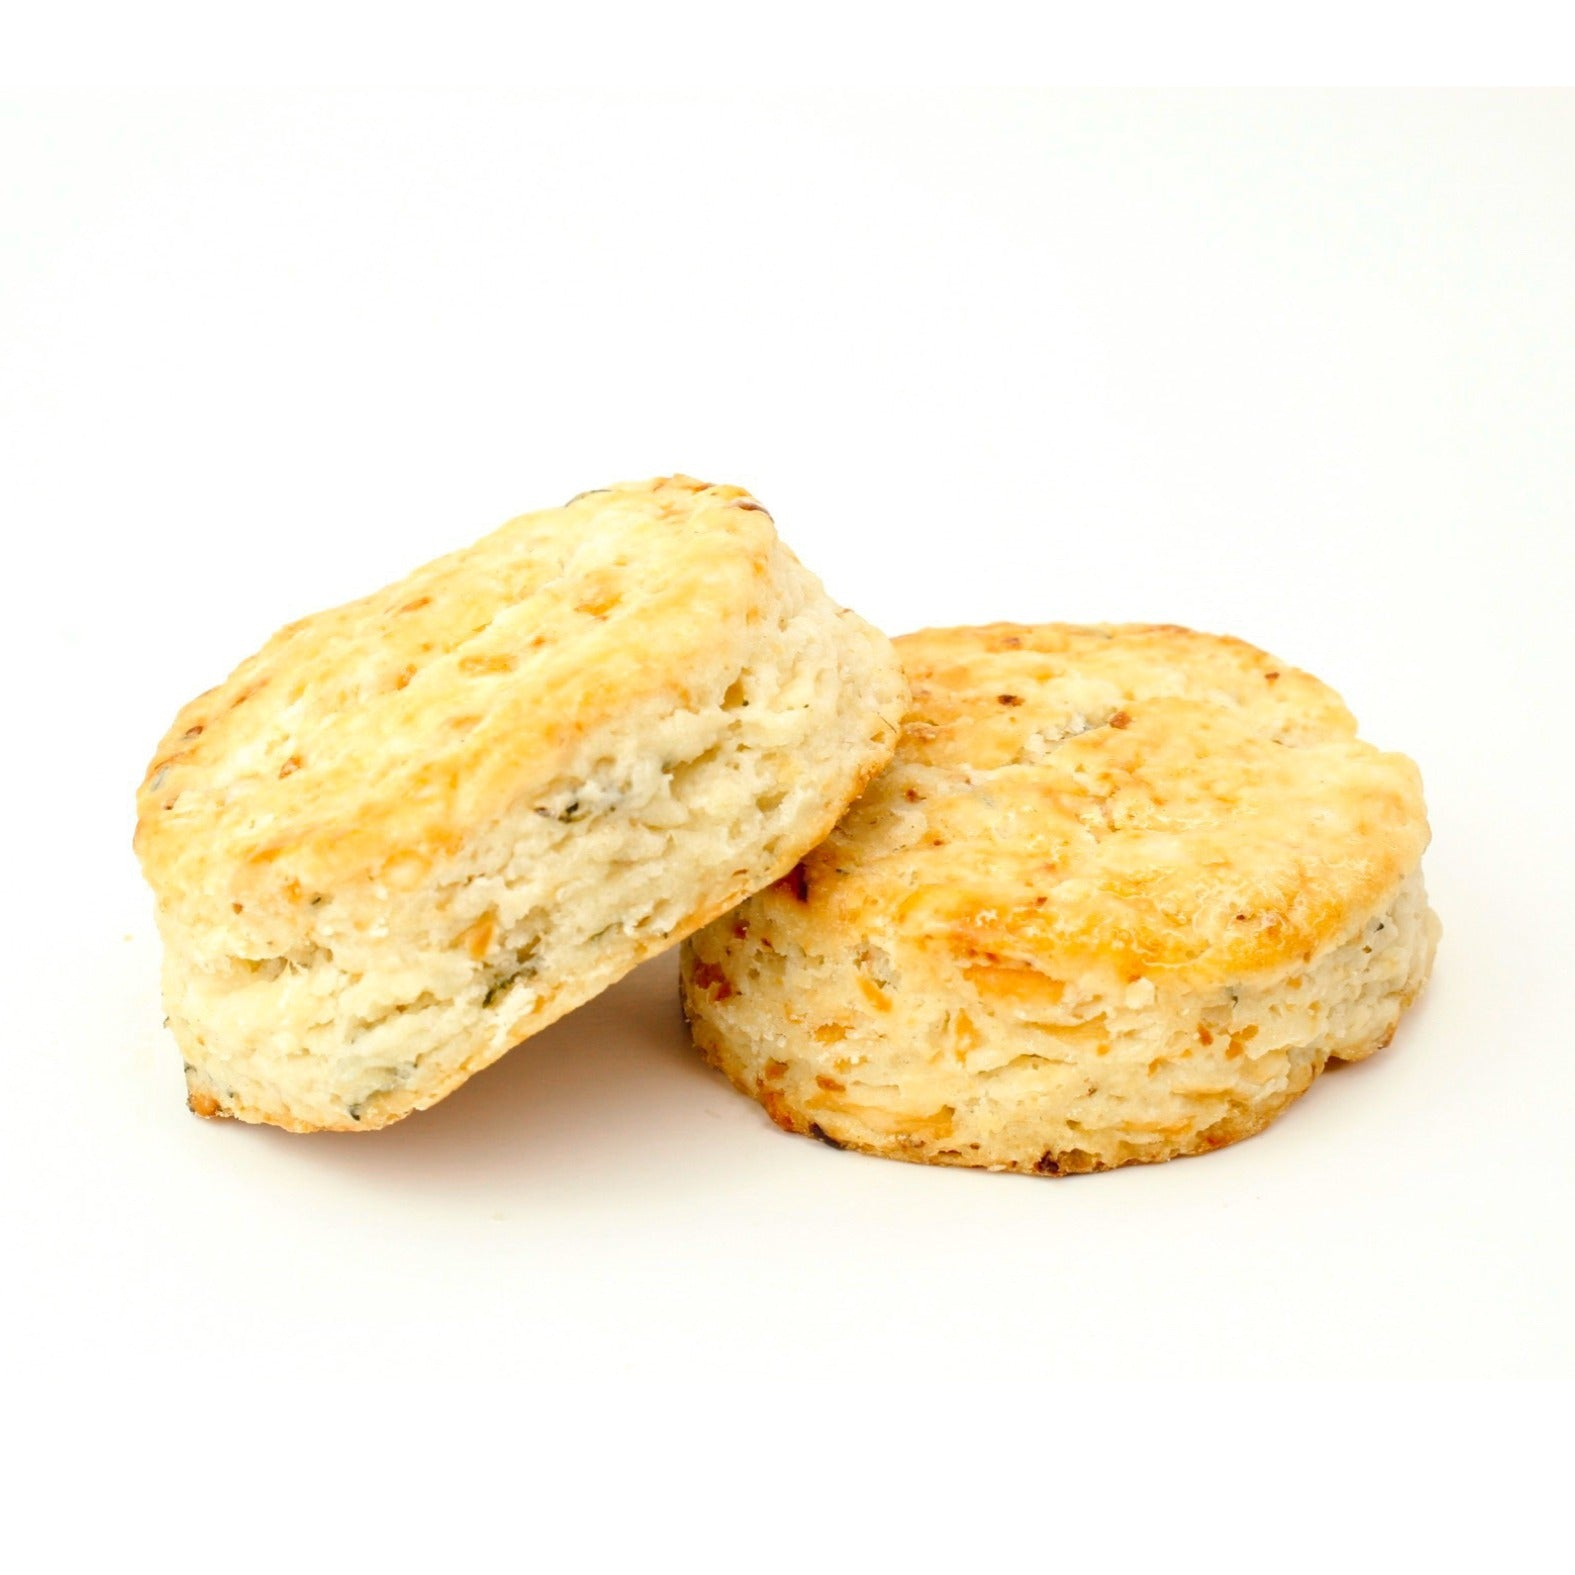 Roasted Garlic, Asiago & Thyme Biscuits